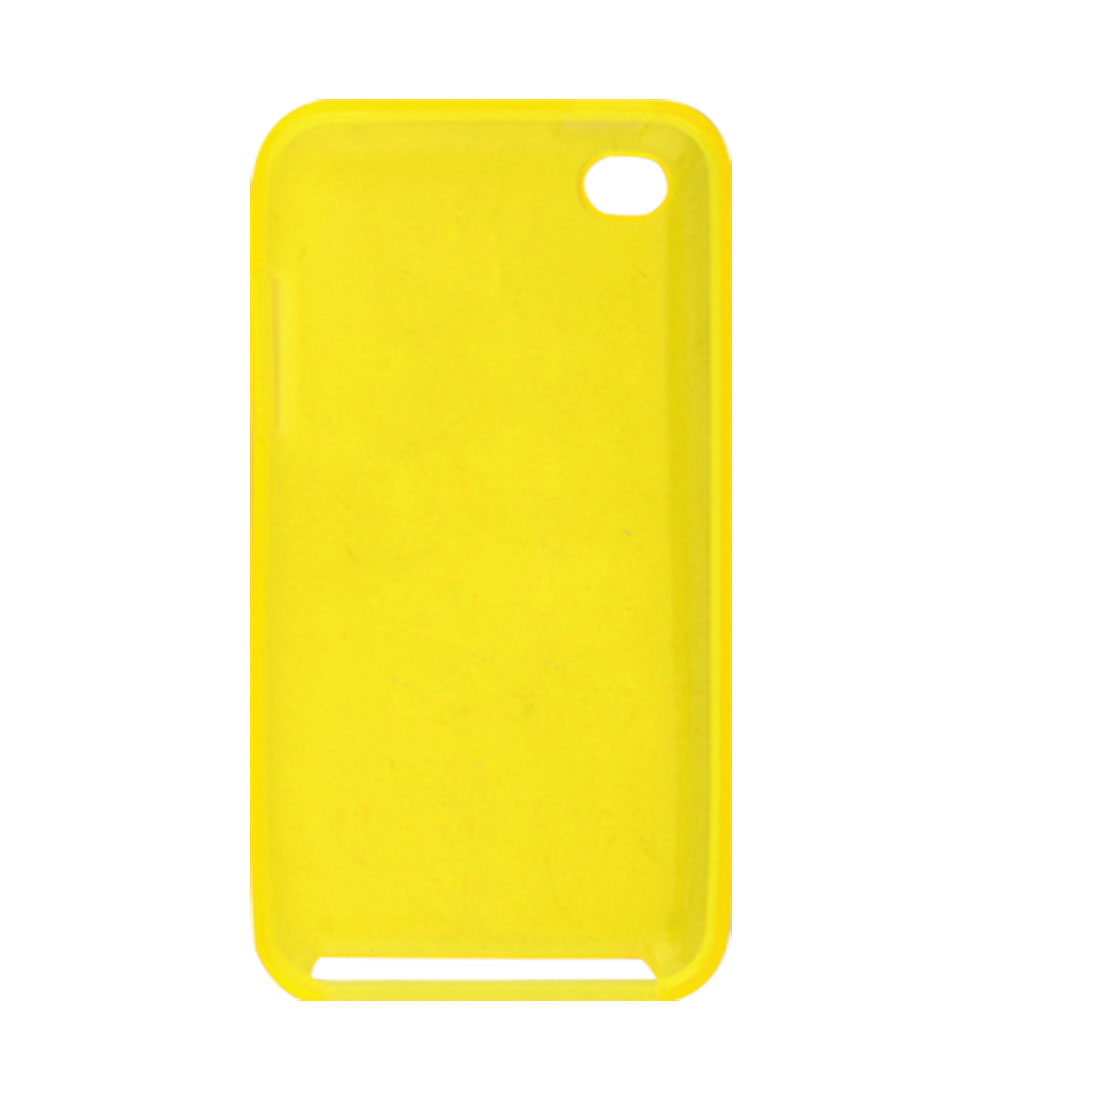 Plastic Yellow Soft Back Protector for iPod Touch 4G